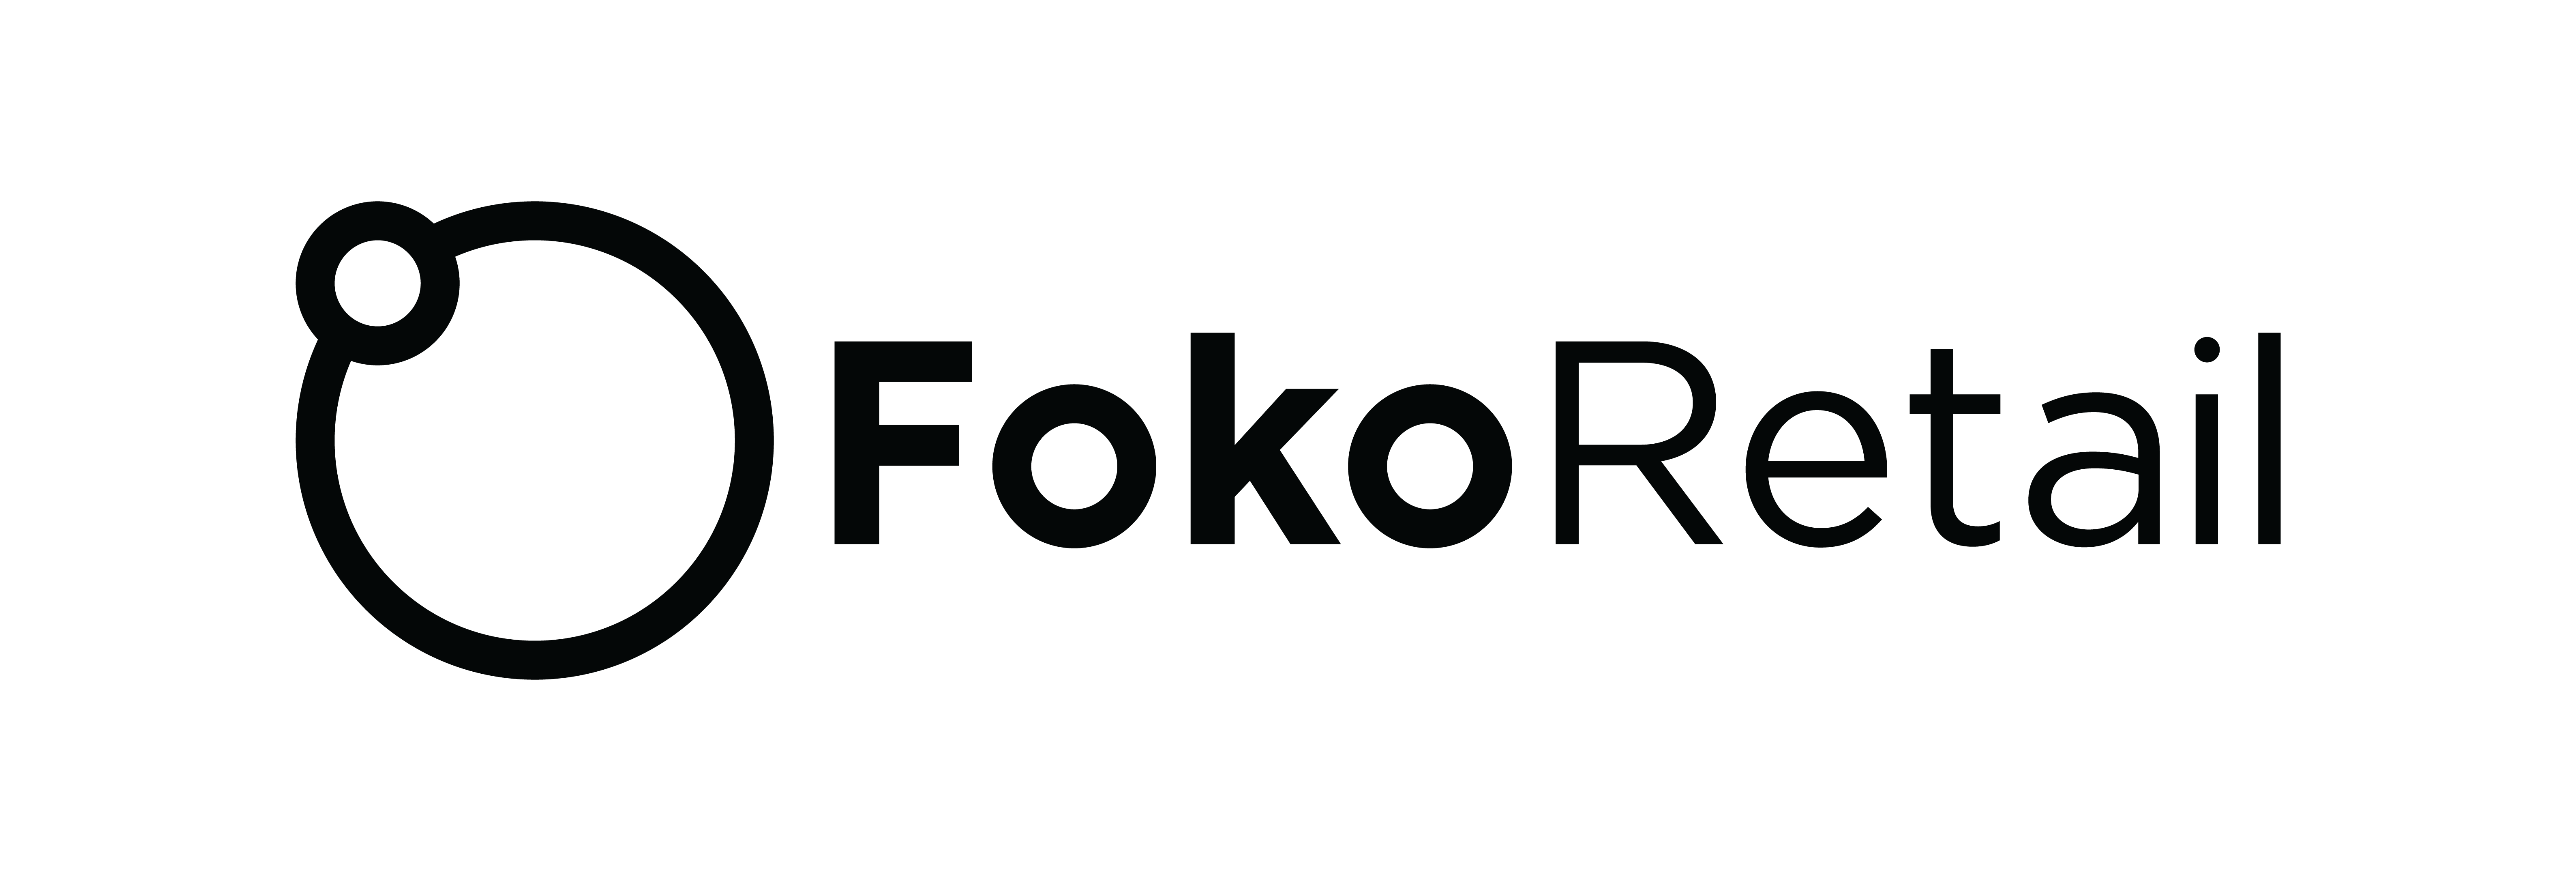 Foko Retail Secures $3M in Investment, Led by BDC Capital